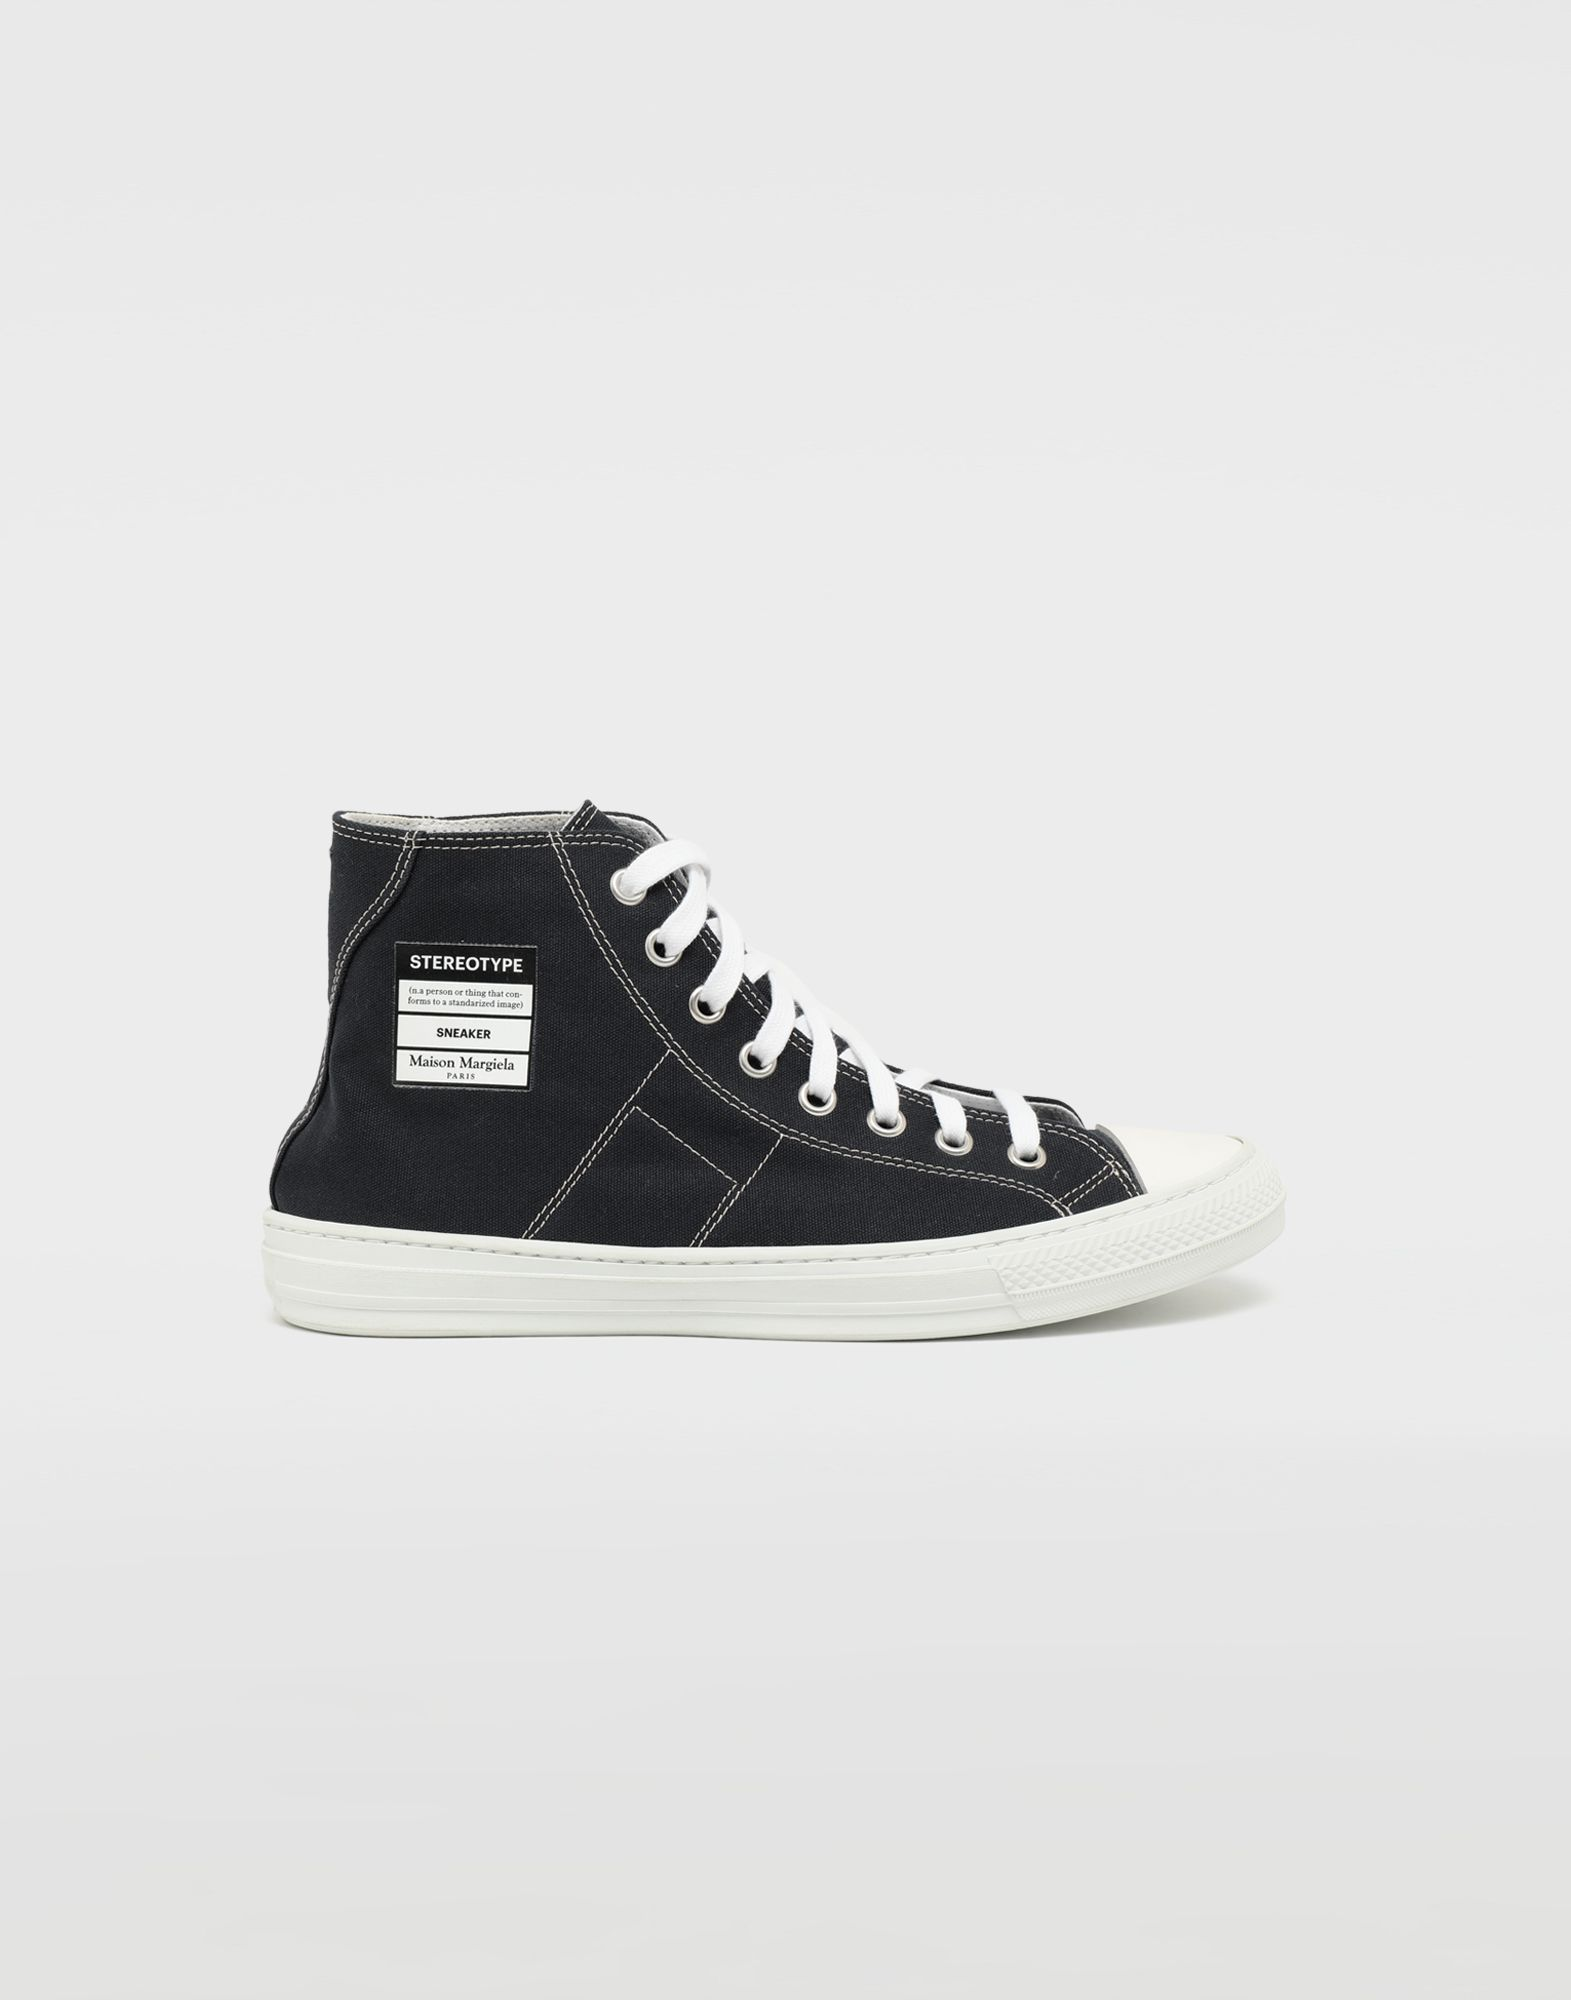 MAISON MARGIELA Stereotype high top sneakers Sneakers Man f